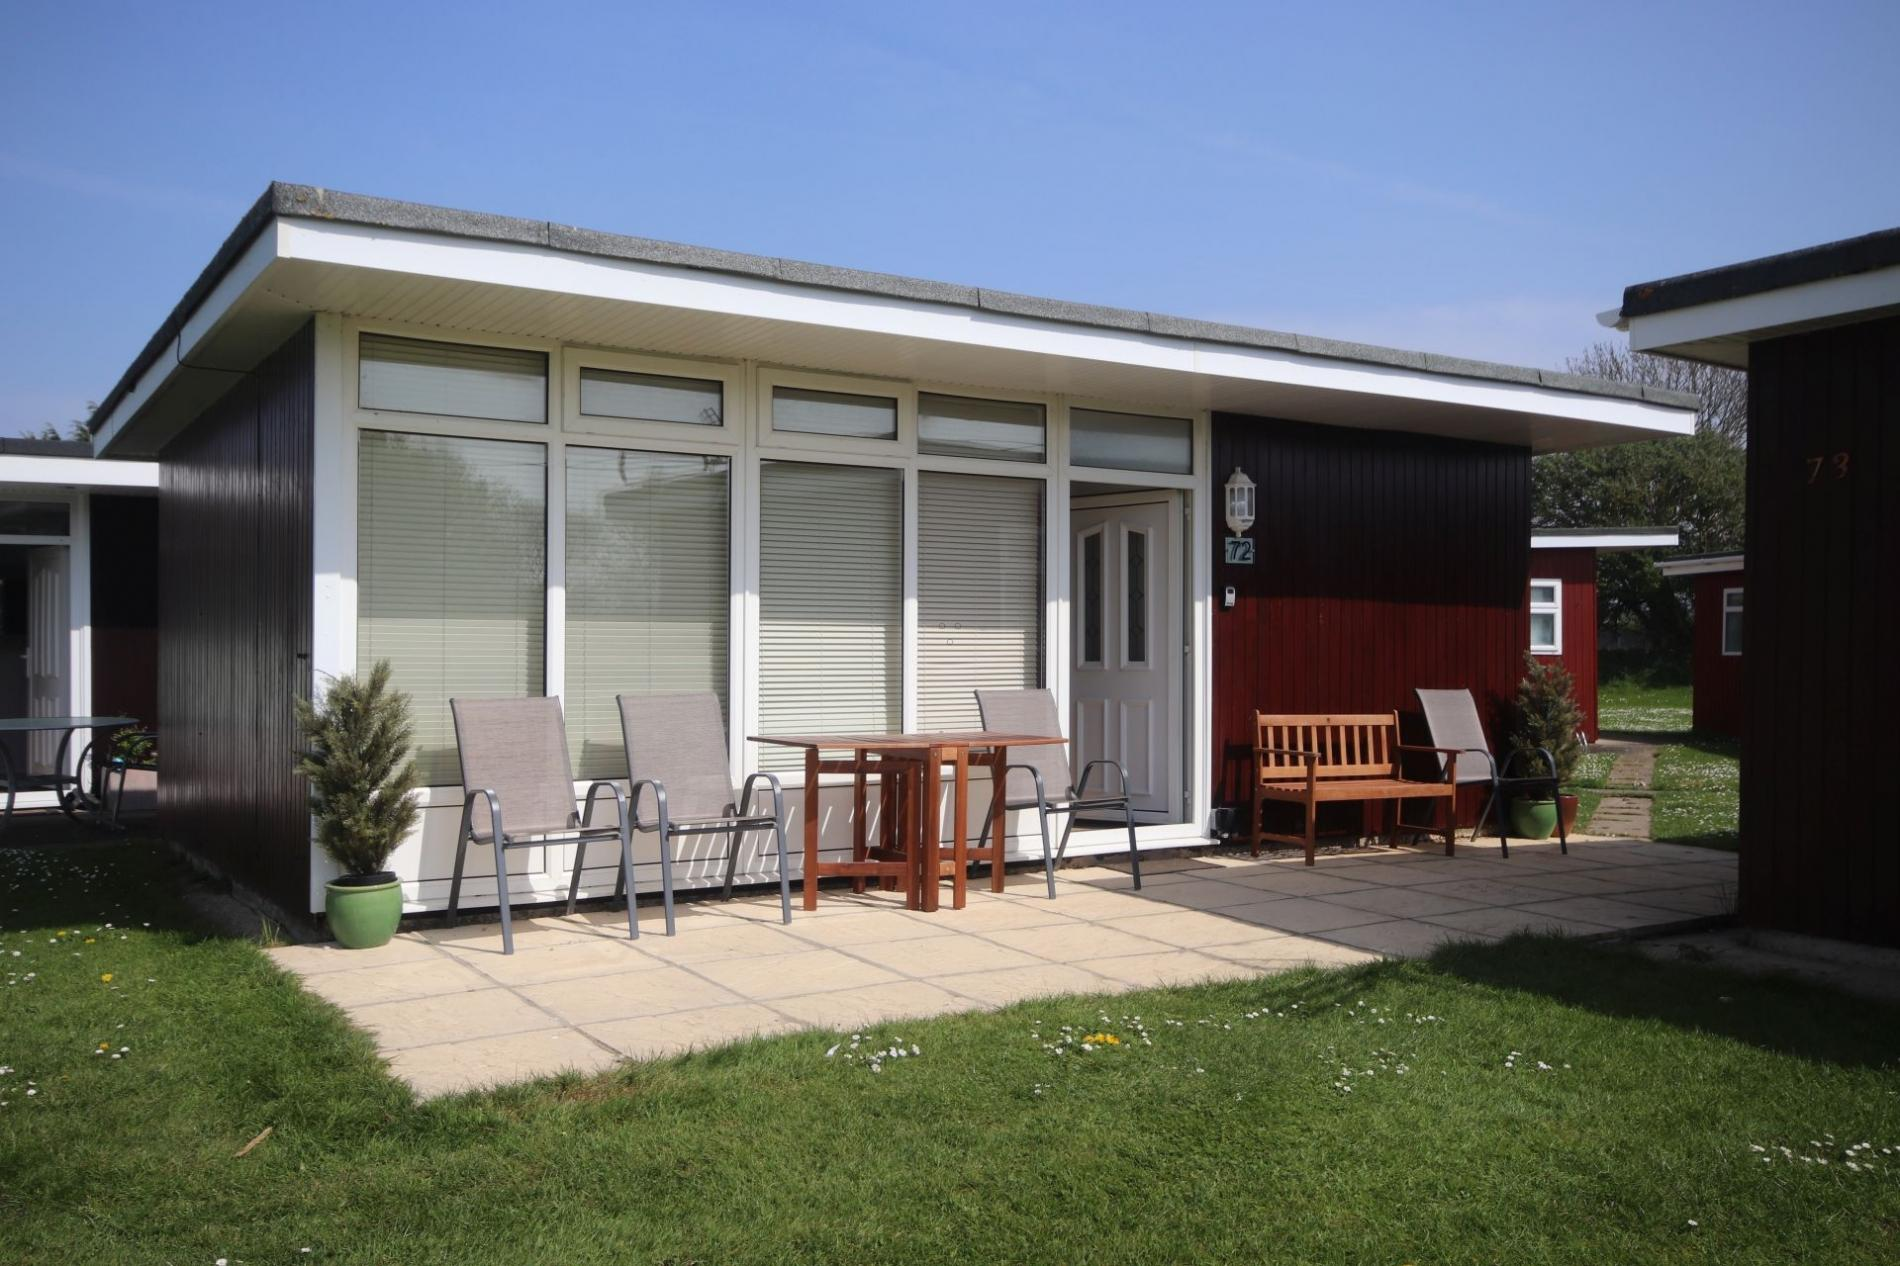 72 Granada Selsey Country Club 2 Bedroom Chalet